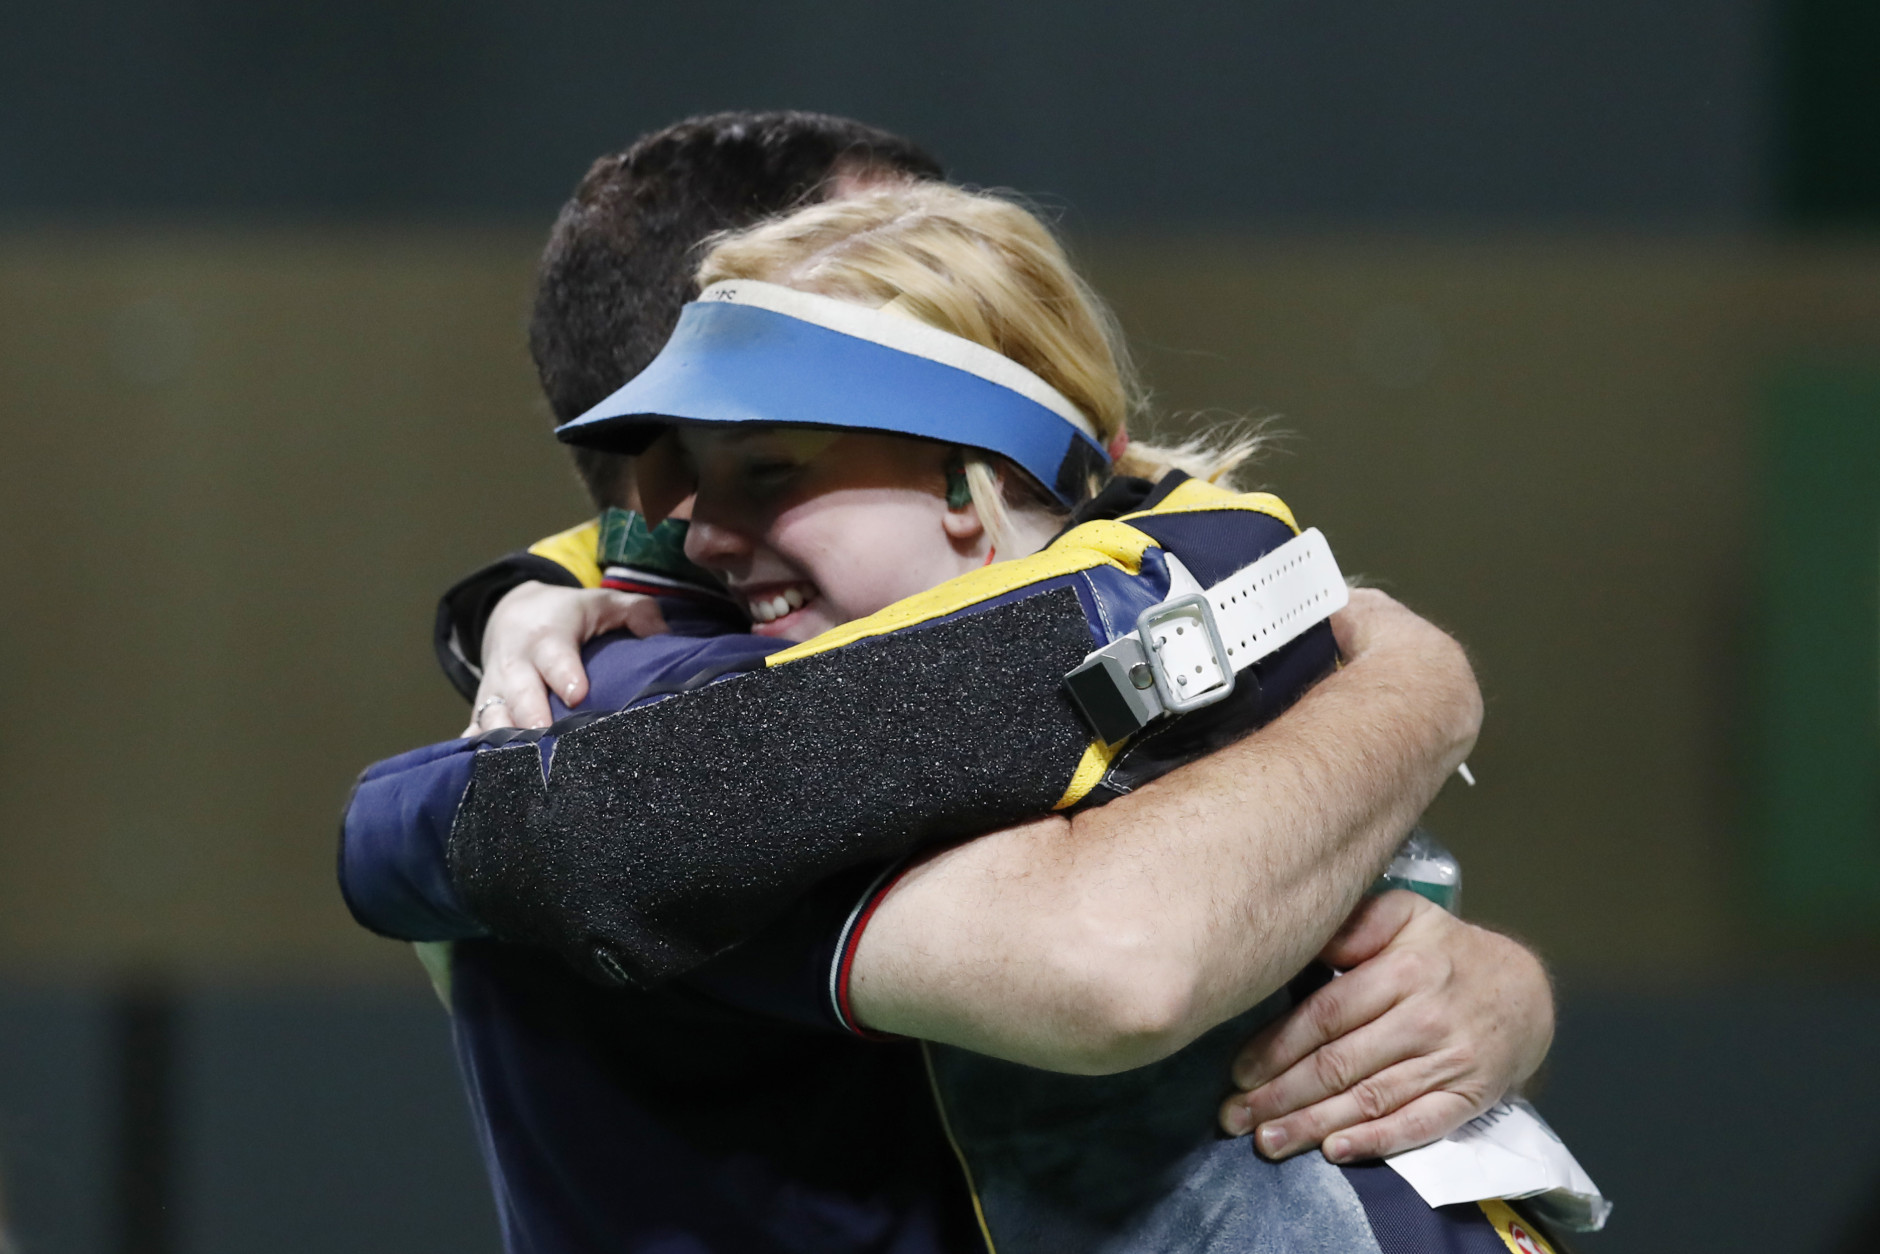 Virginia Thrasher of the United States celebrates with her coach winning the gold medal during the victory ceremony for the Women's 10m Air Rifle event, at Olympic Shooting Center at the 2016 Summer Olympics in Rio de Janeiro, Brazil, Saturday, Aug. 6, 2016. (AP Photo/Hassan Ammar)